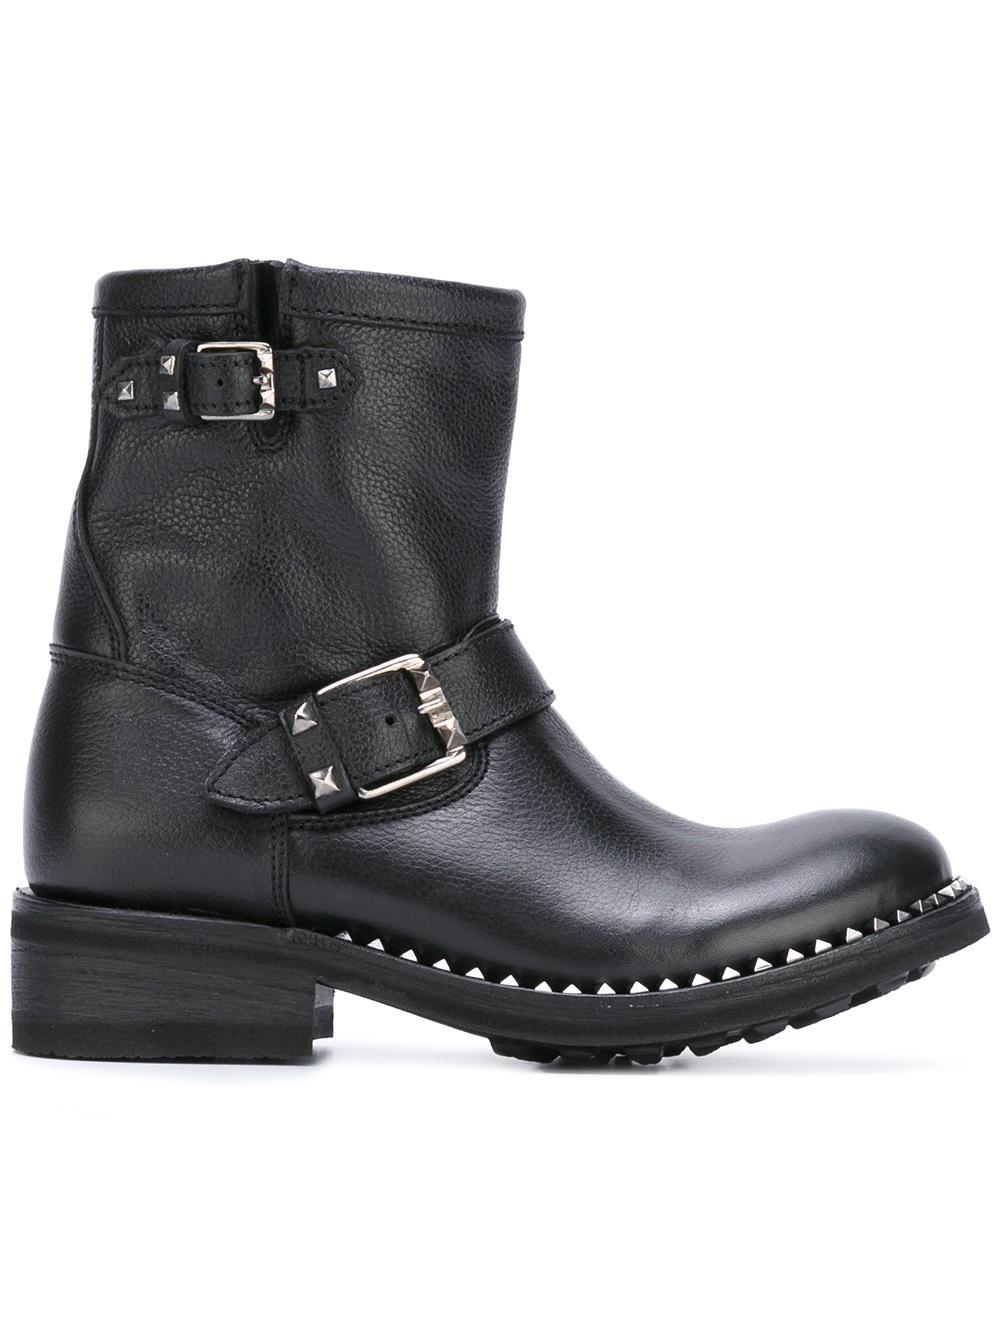 Ash Leather 'truth Destroyer' Boots in Black